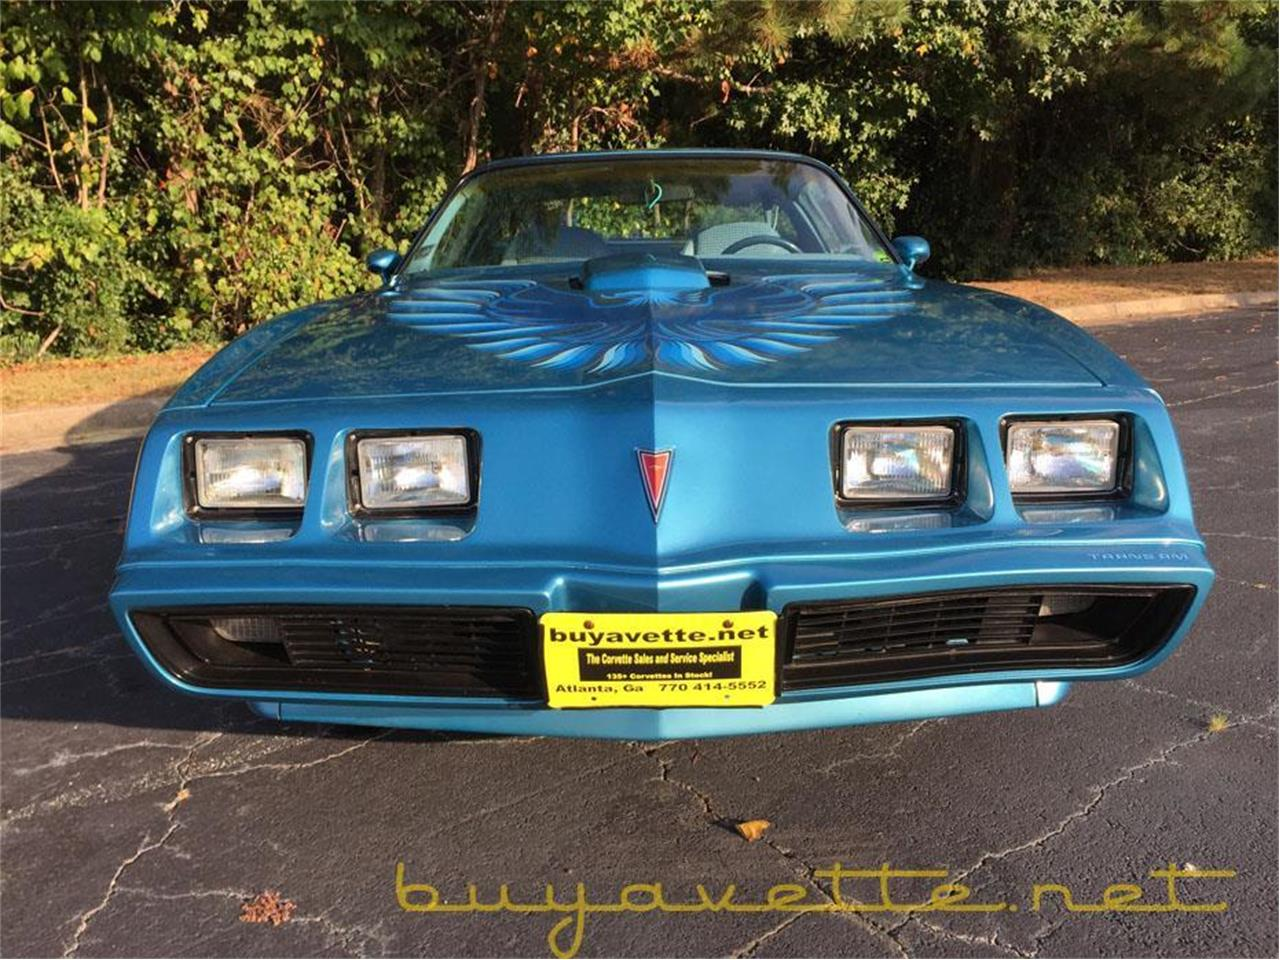 Large Picture of '79 Pontiac Firebird - $24,999.00 Offered by Buyavette - OIK2